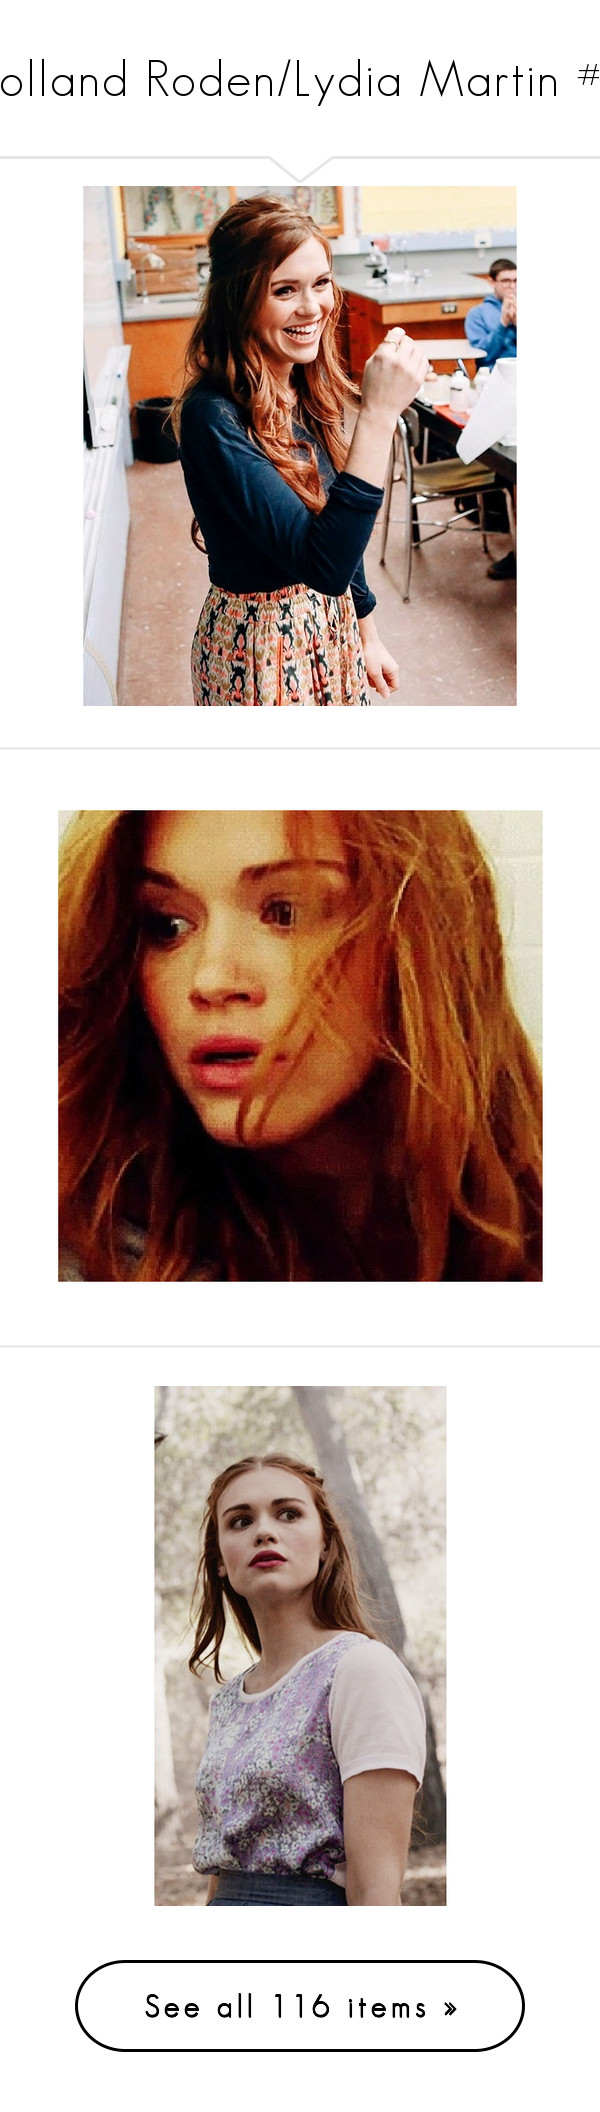 """Holland Roden/Lydia Martin #2"" by nerdbucket ❤ liked on Polyvore featuring holland roden, teen wolf, people, holland, hair, celebrities, girls, home, home decor and models"